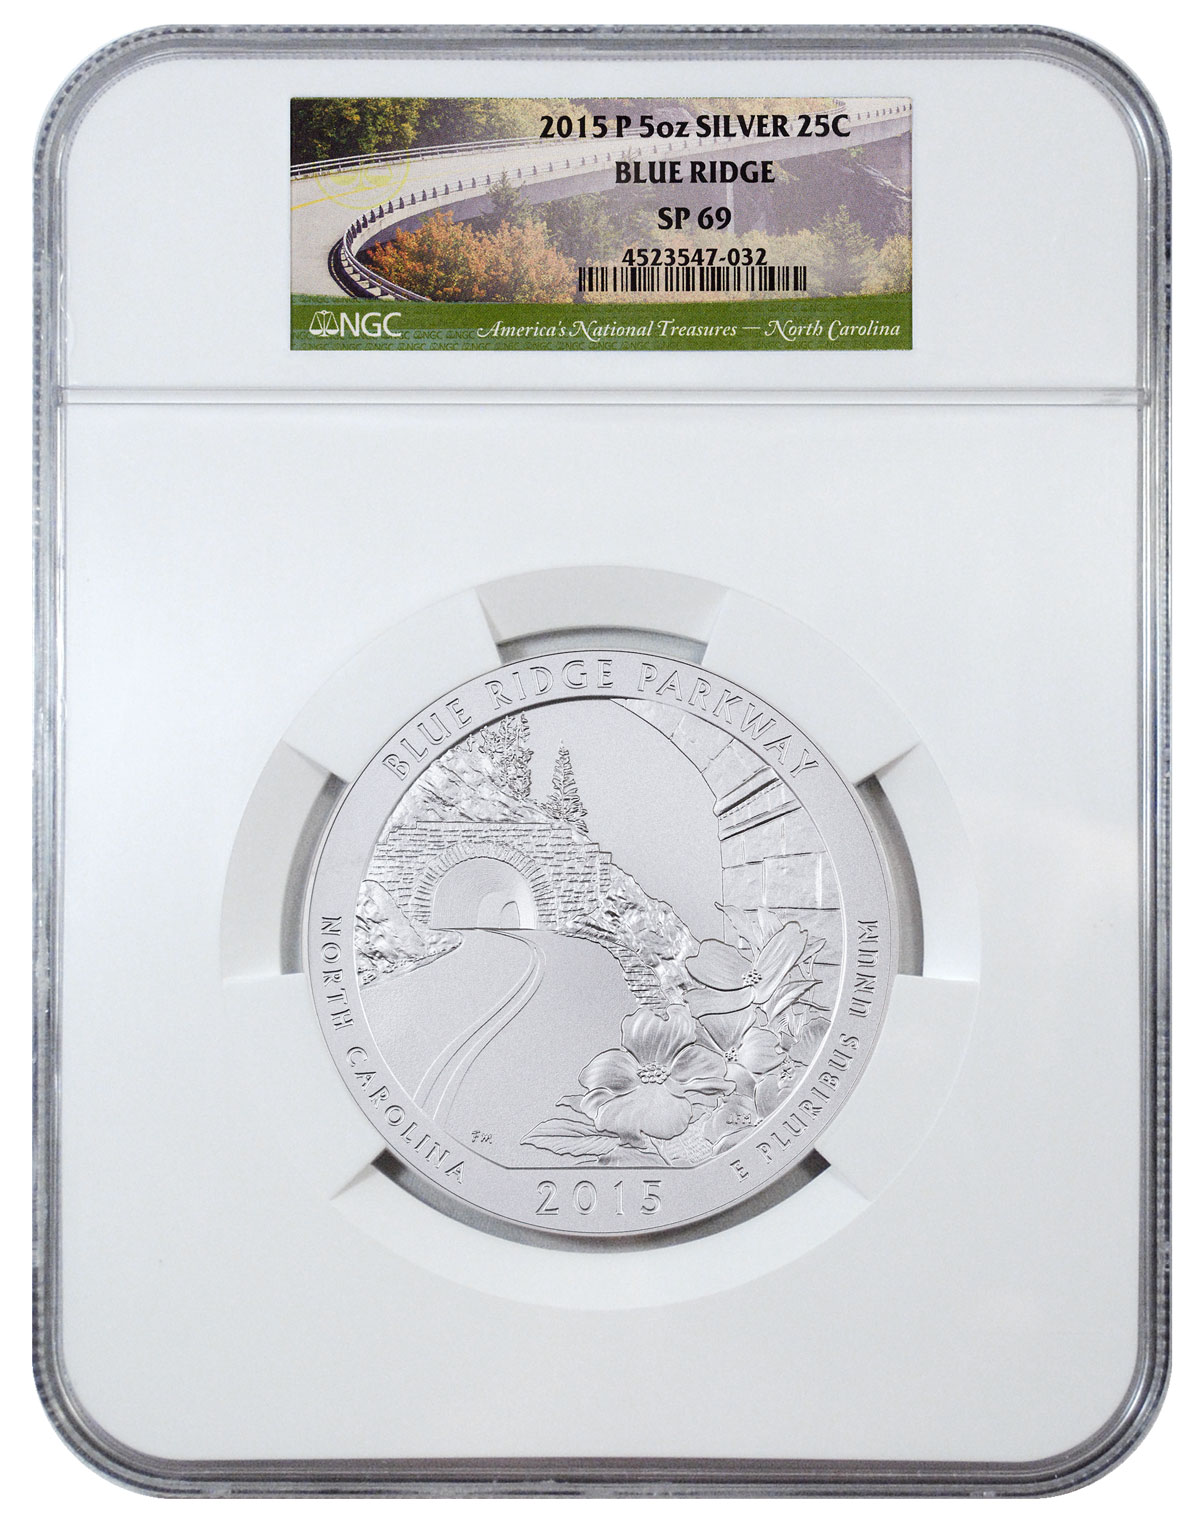 2015-P Blue Ridge 5 oz. Silver America the Beautiful Specimen Coin NGC SP69